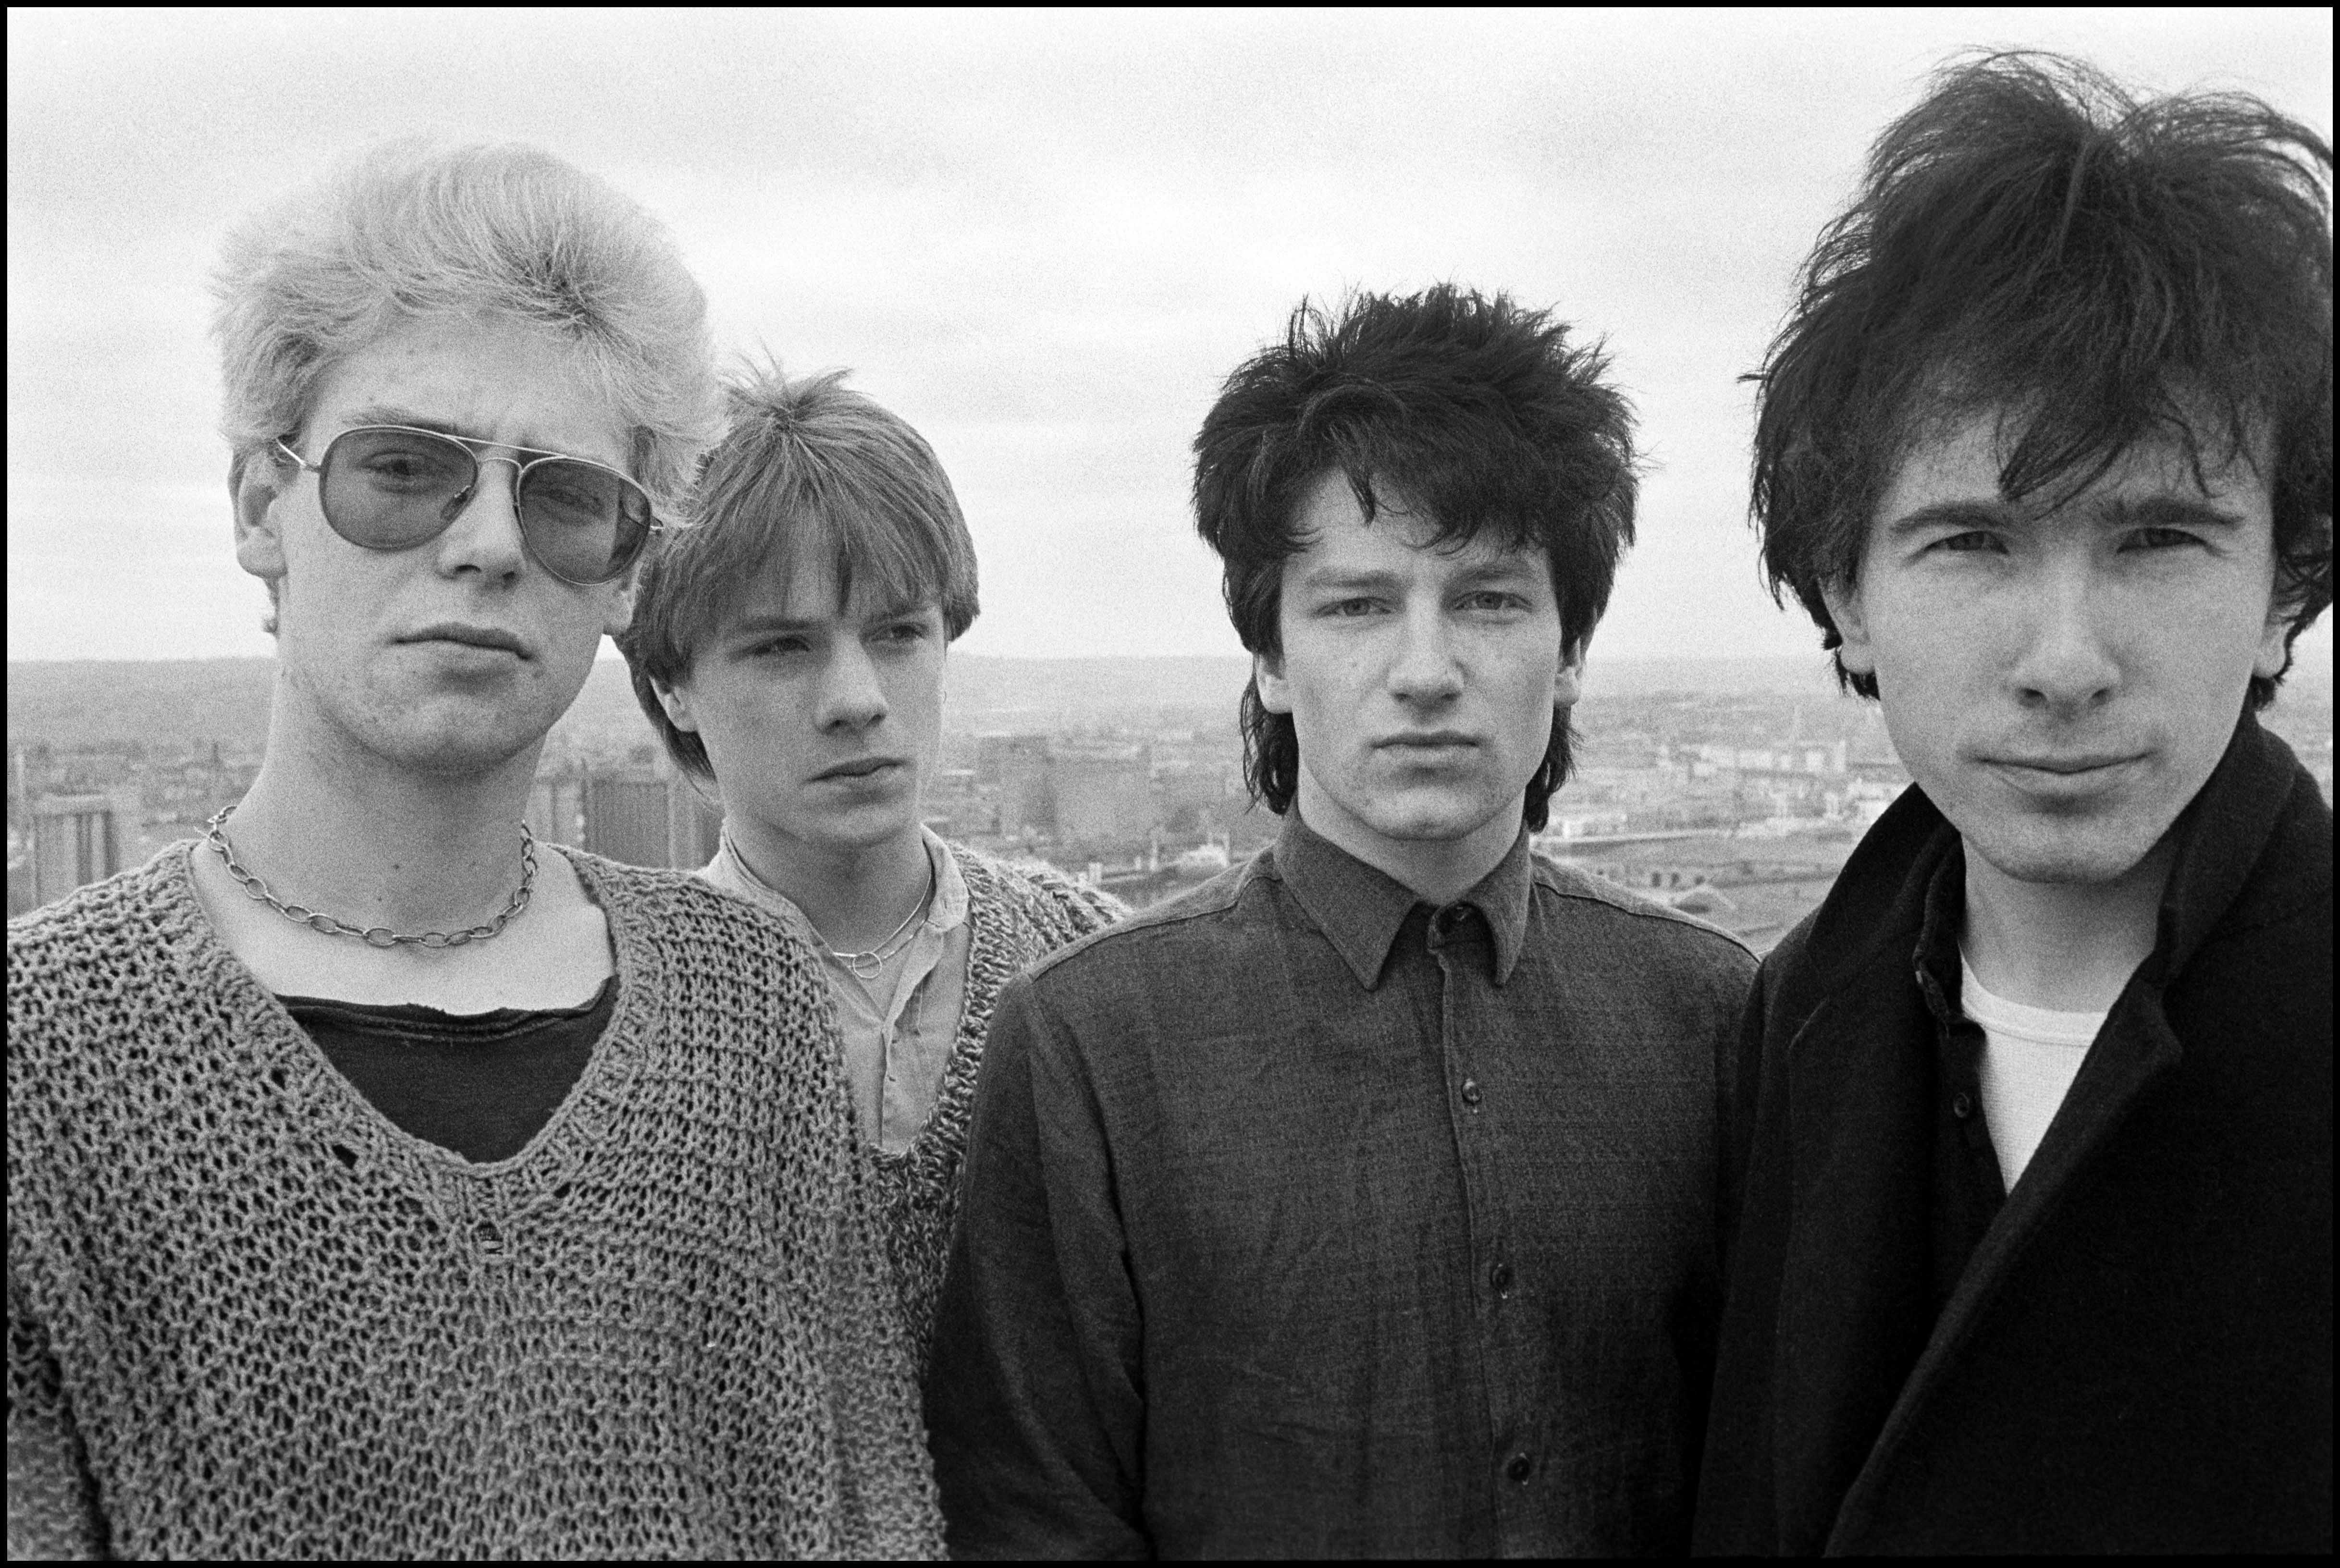 U2 on the roof of the Cork Country Club Hotel, Cork, Ireland March 2 1980